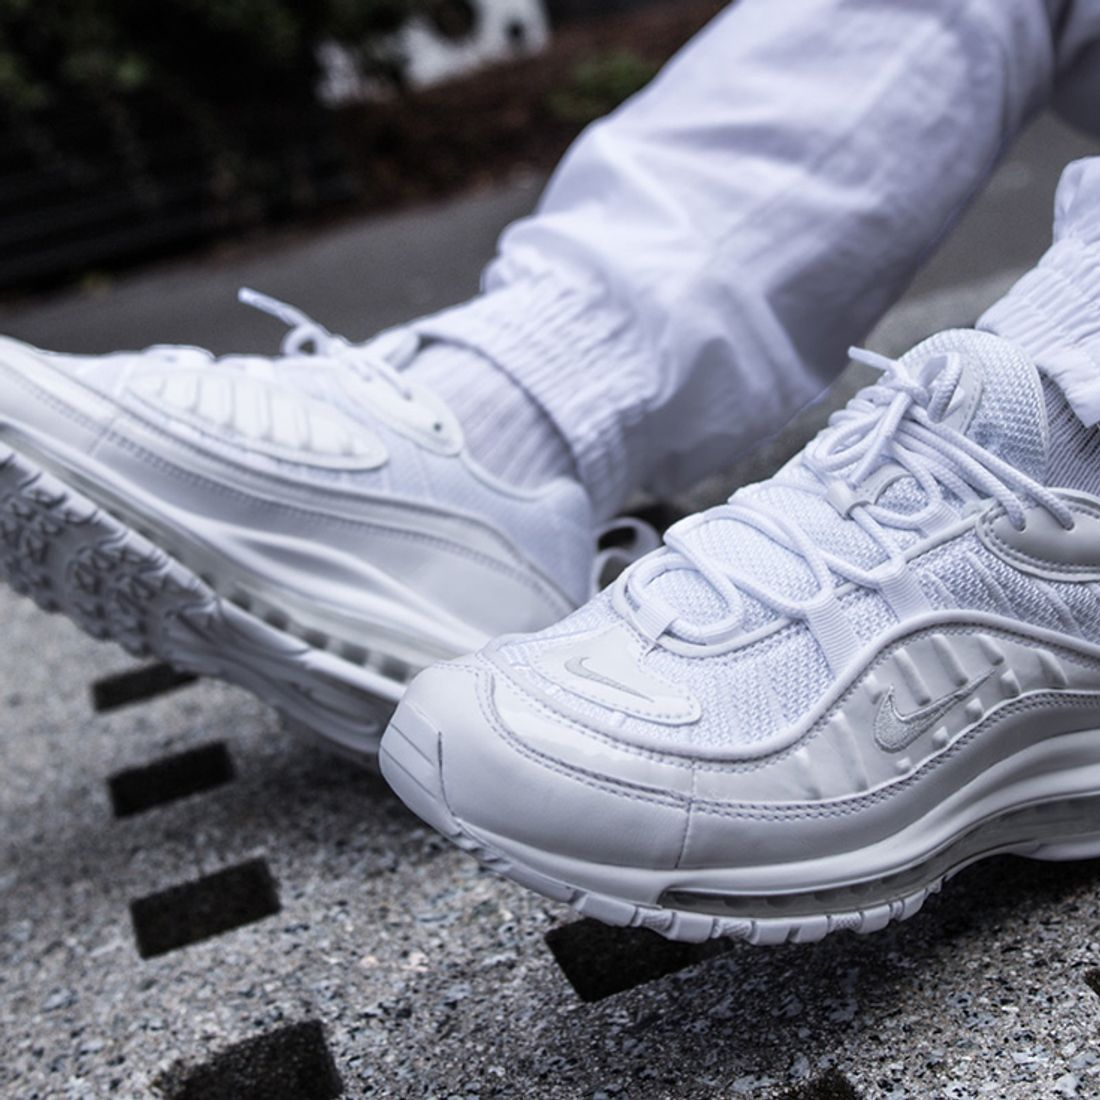 On Foot With Some Of The Cleanest Air Max 98s Yet Sneaker Freaker